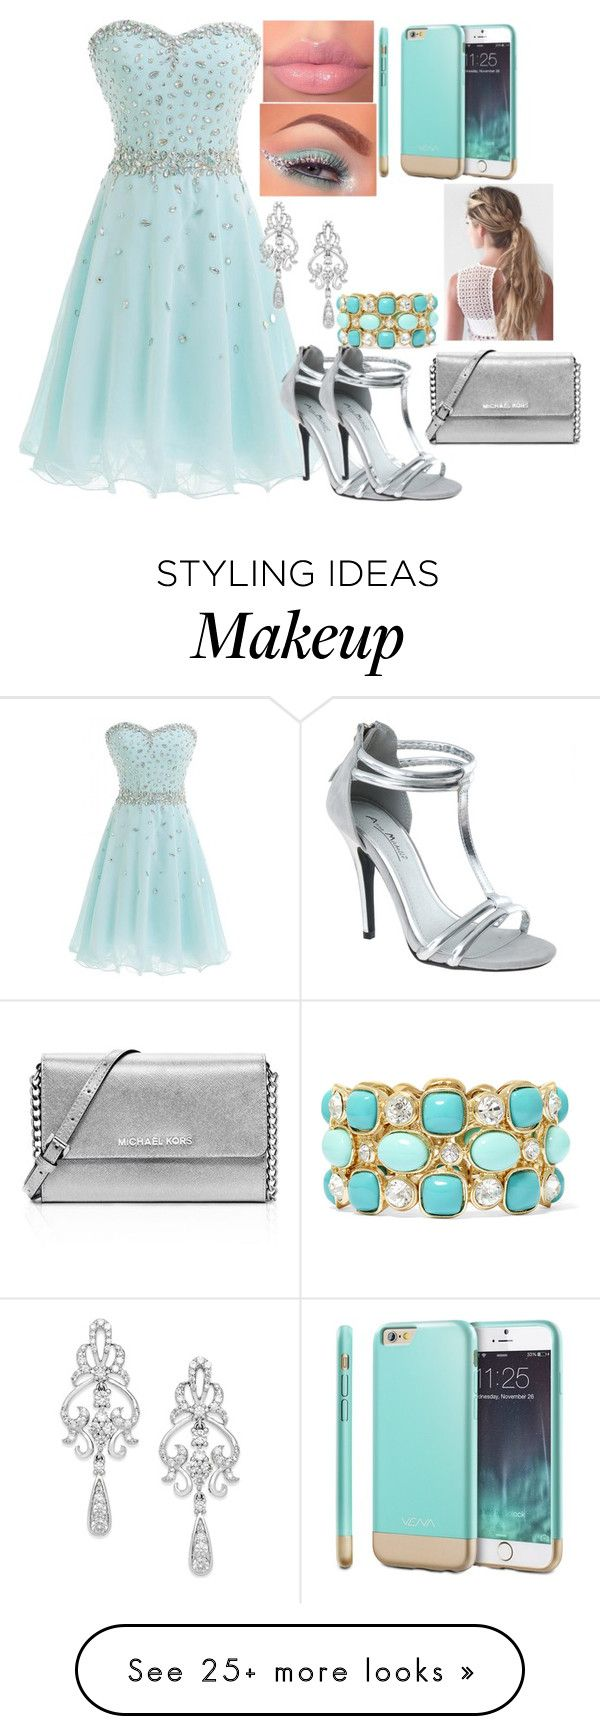 """Featured Item: Mint colored dress"" by kiara-fleming on Polyvore featuring Wrapped In Love, Monet and MICHAEL Michael Kors"